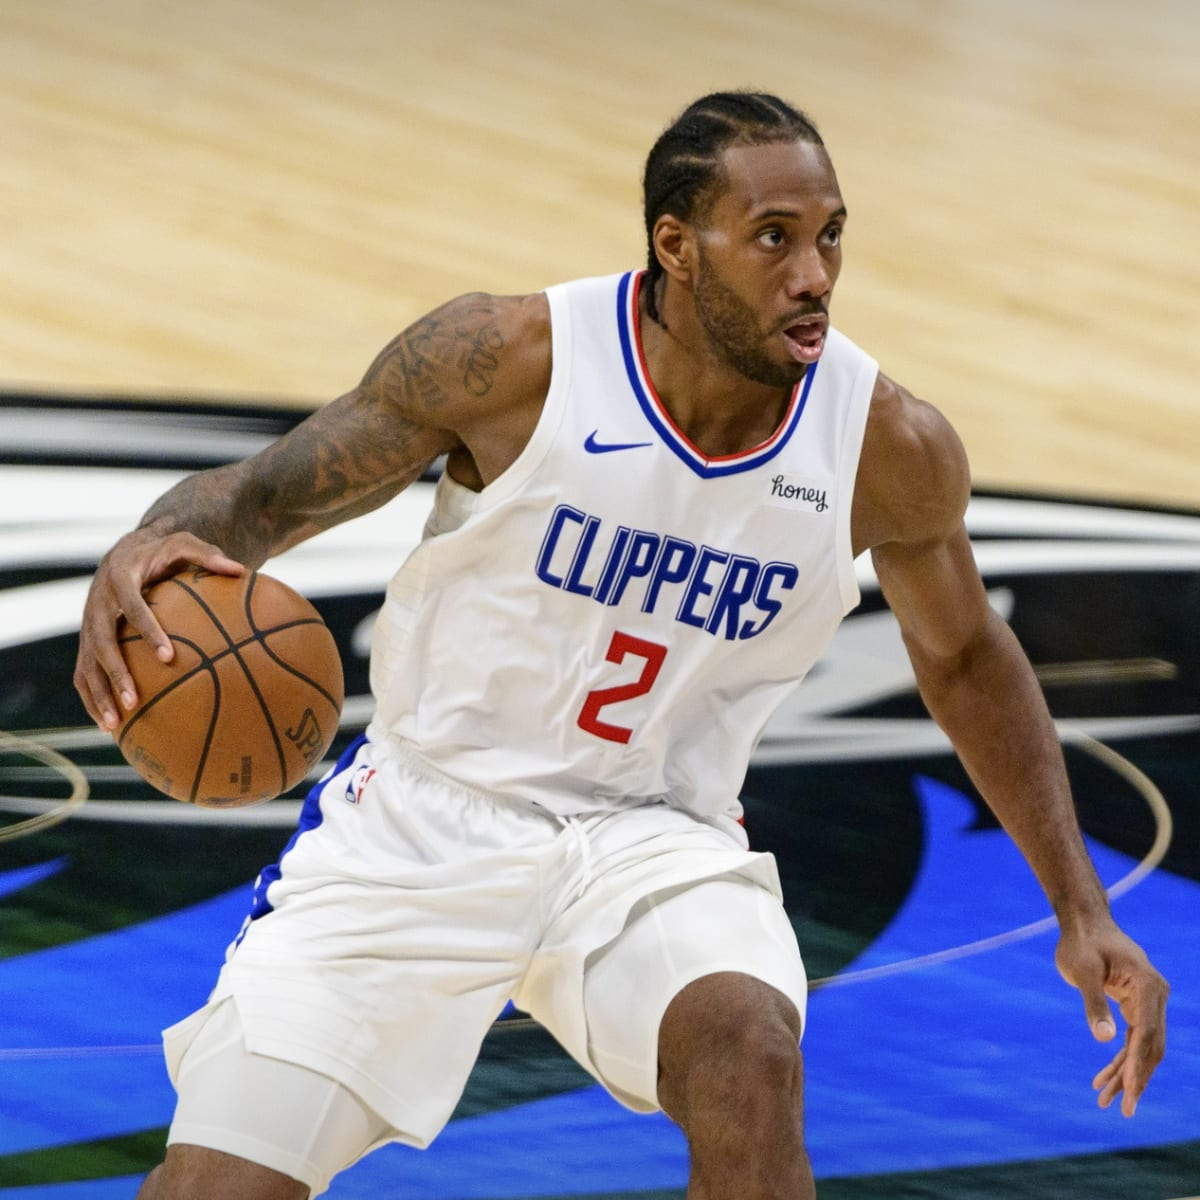 LA Clippers Kawhi Leonard's Free Agency Odds For Next Team Revealed -  Sports Illustrated LA Clippers News, Analysis and More